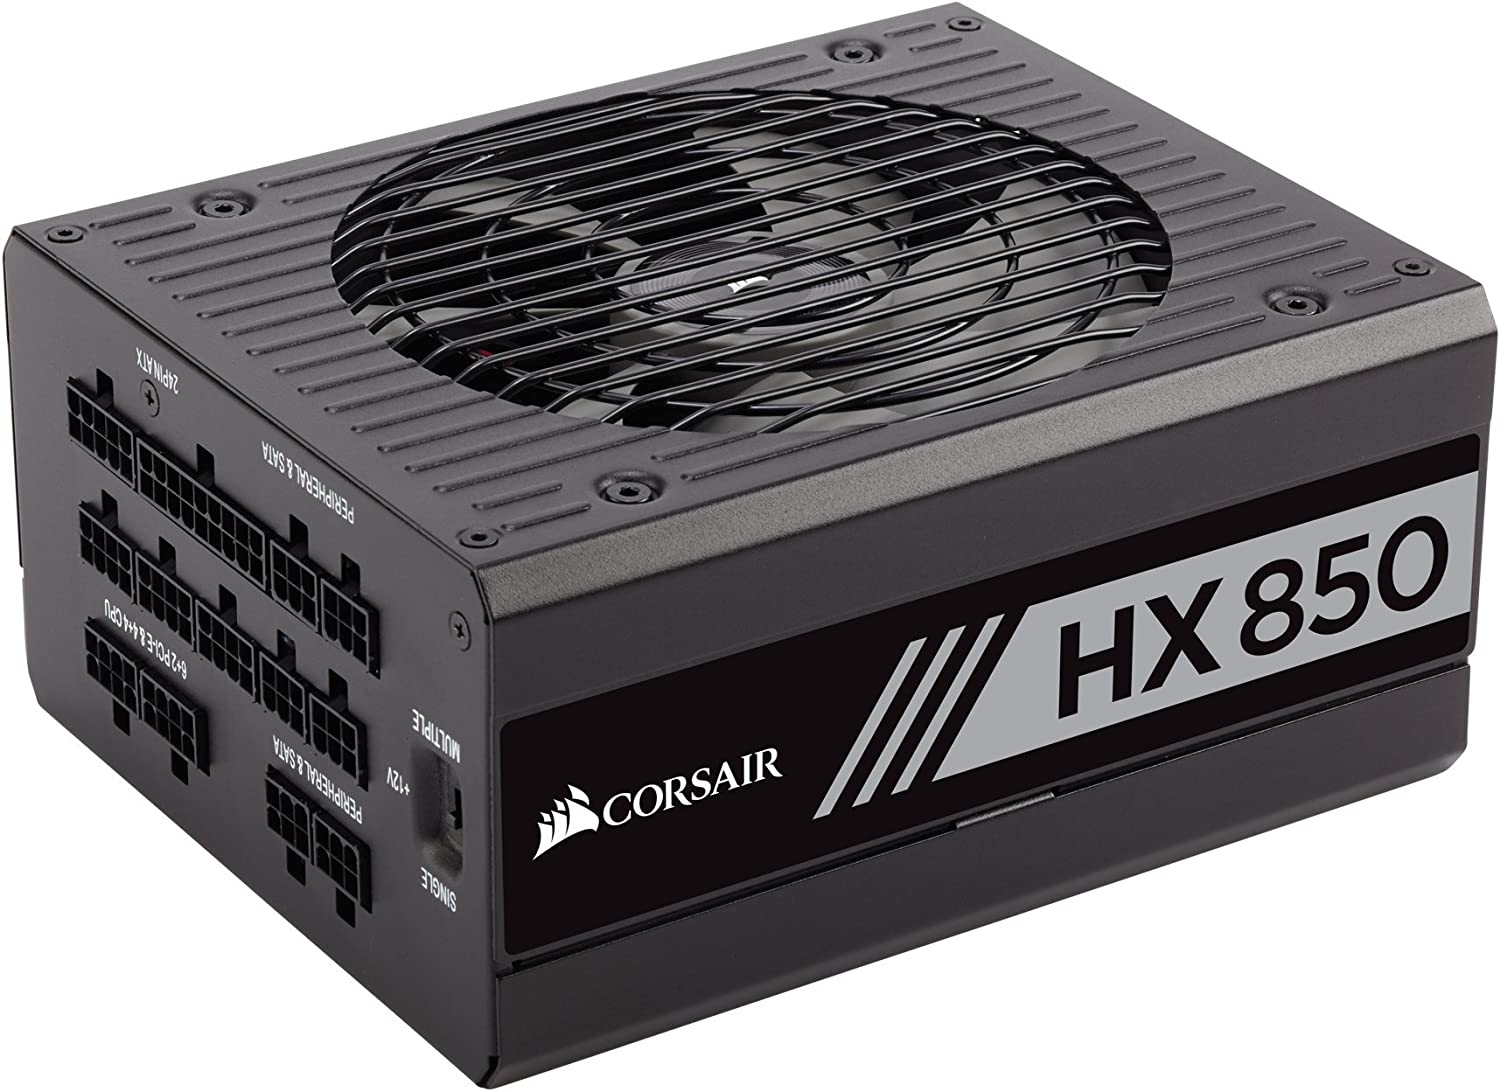 CORSAIR HX Series, HX850, 850 Watt, 80+ Platinum Certified, Fully Modular Power Supply